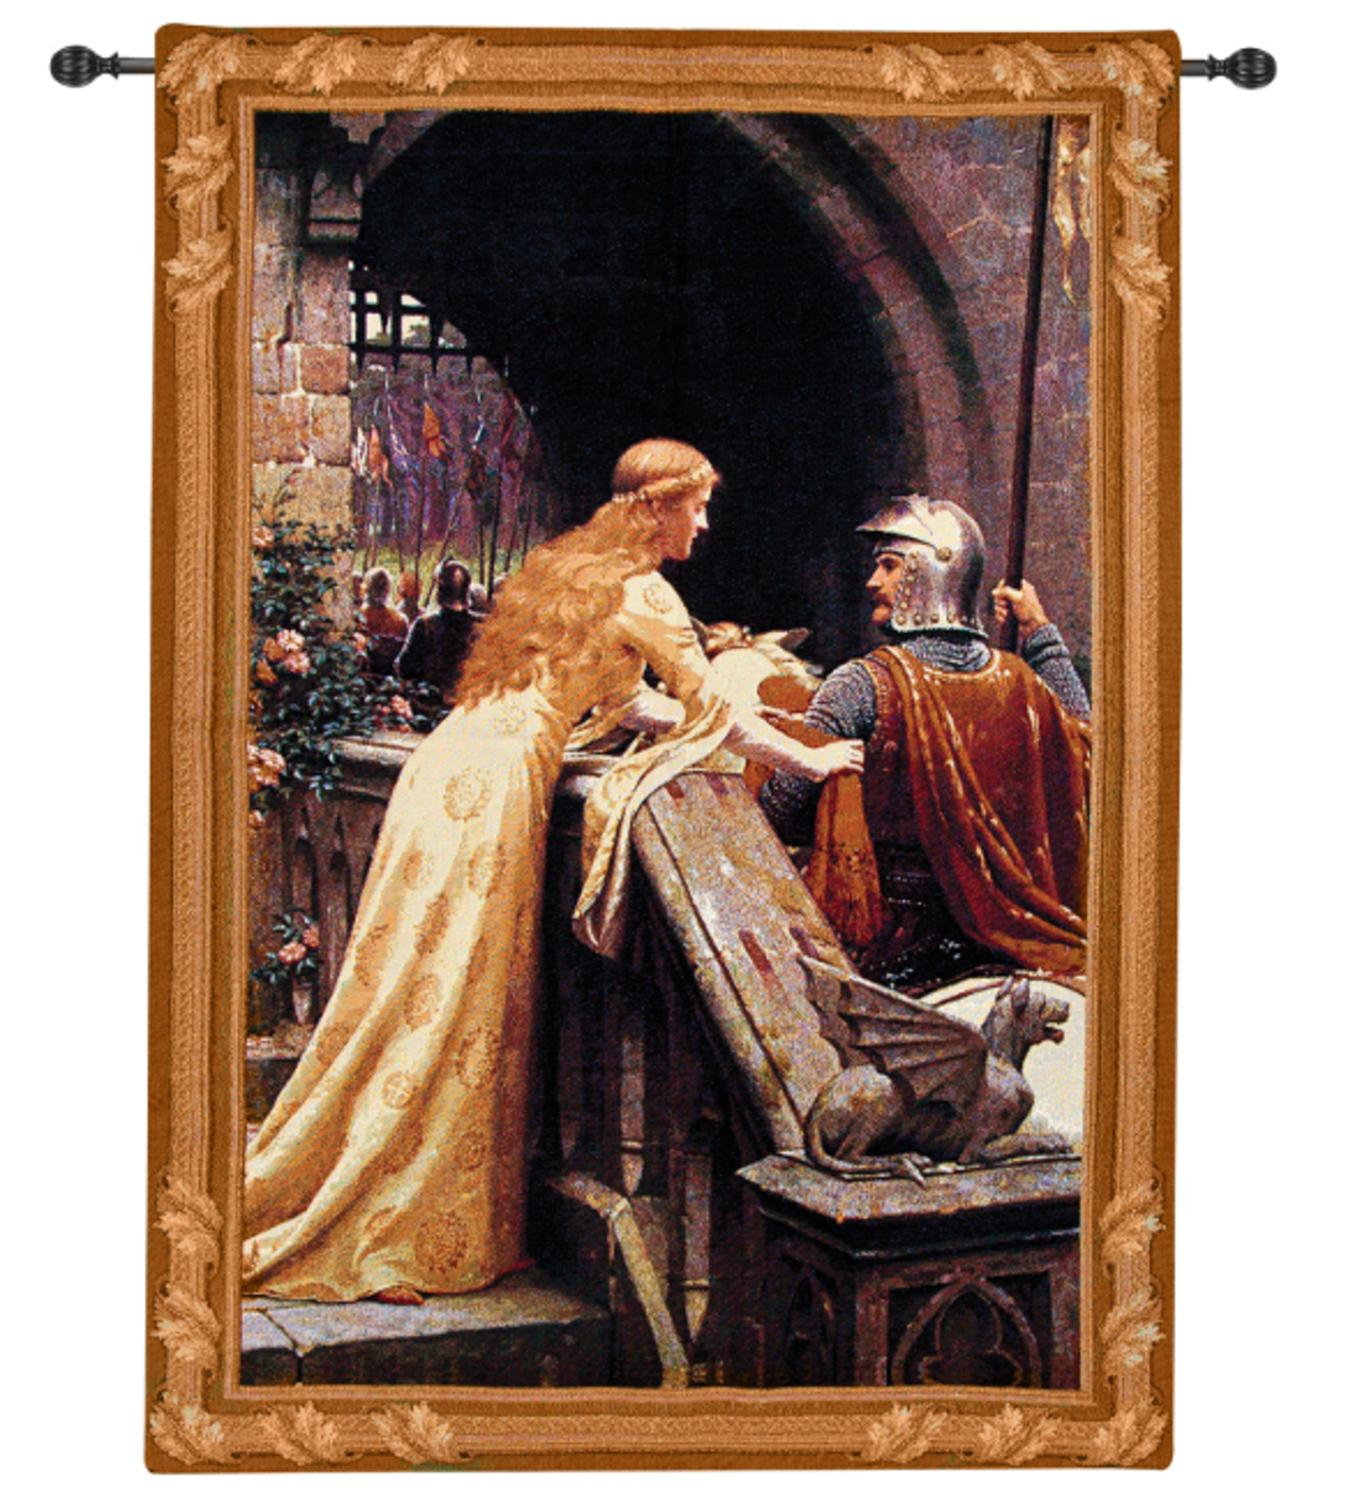 "Lady Messenger Cotton Woven Wall Art Hanging Tapestry 35"" x 26"""